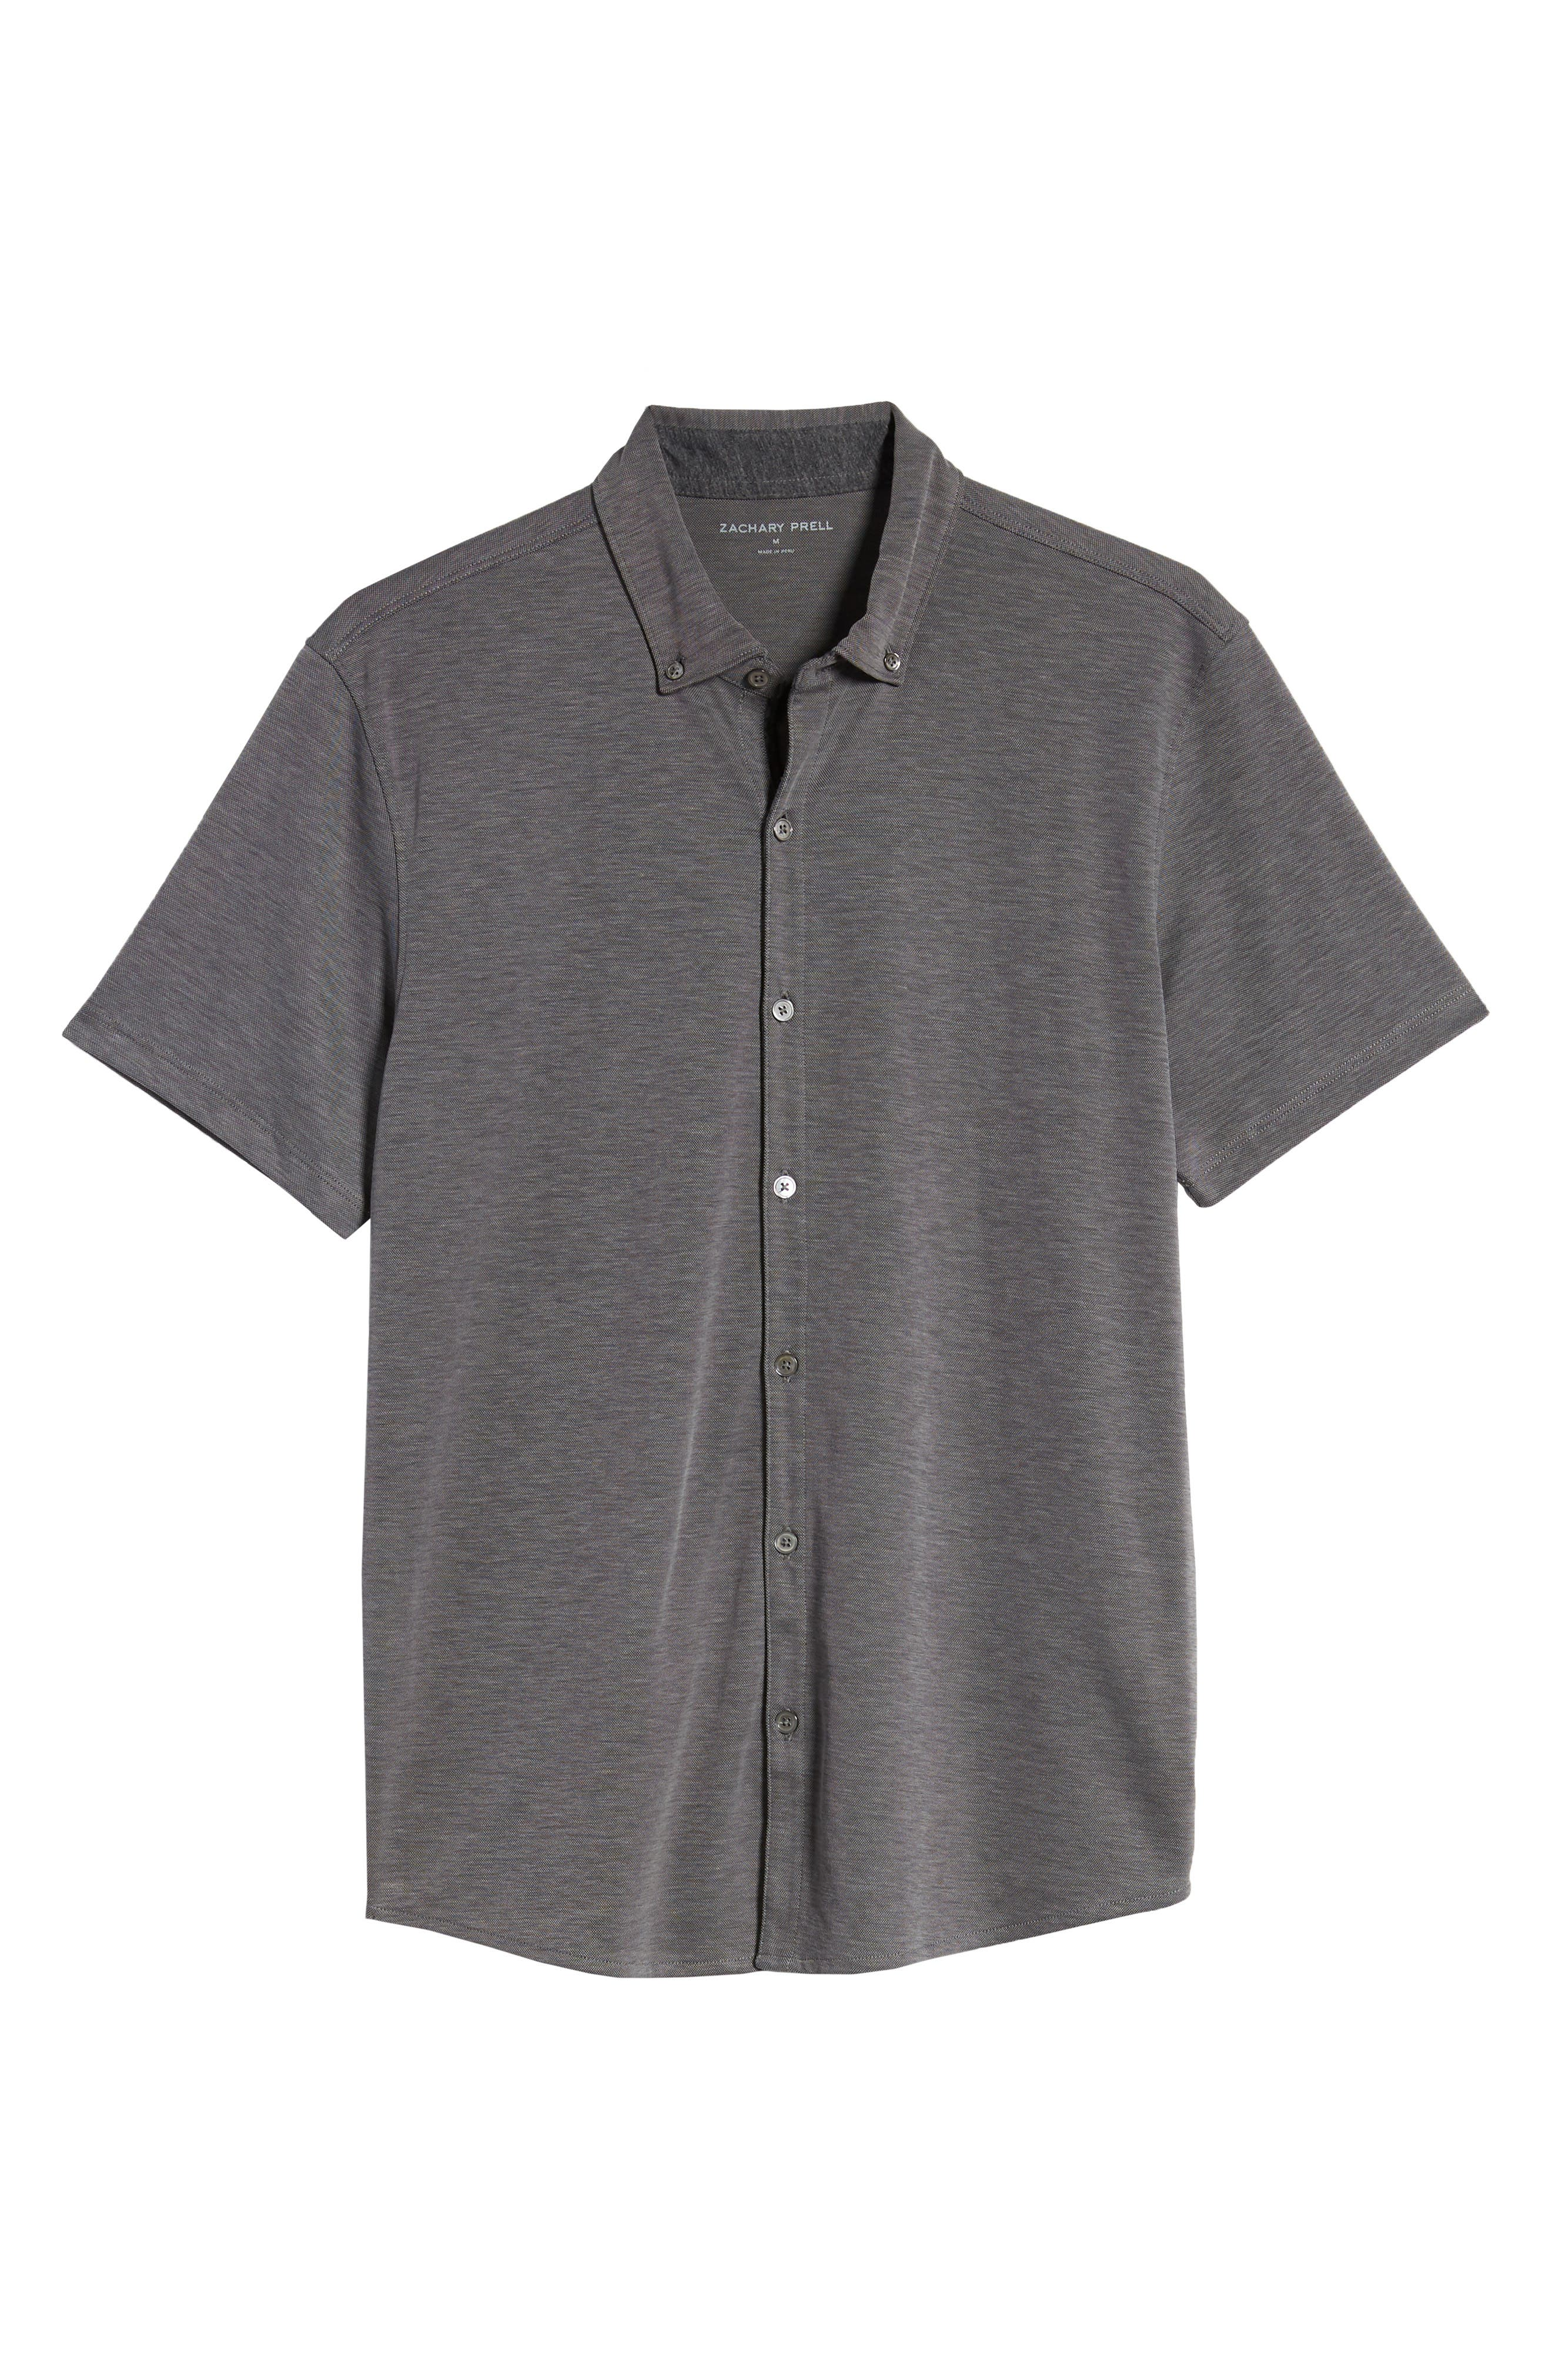 ZACHARY PRELL, Caruth Regular Fit Short Sleeve Sport Shirt, Alternate thumbnail 6, color, CHARCOAL